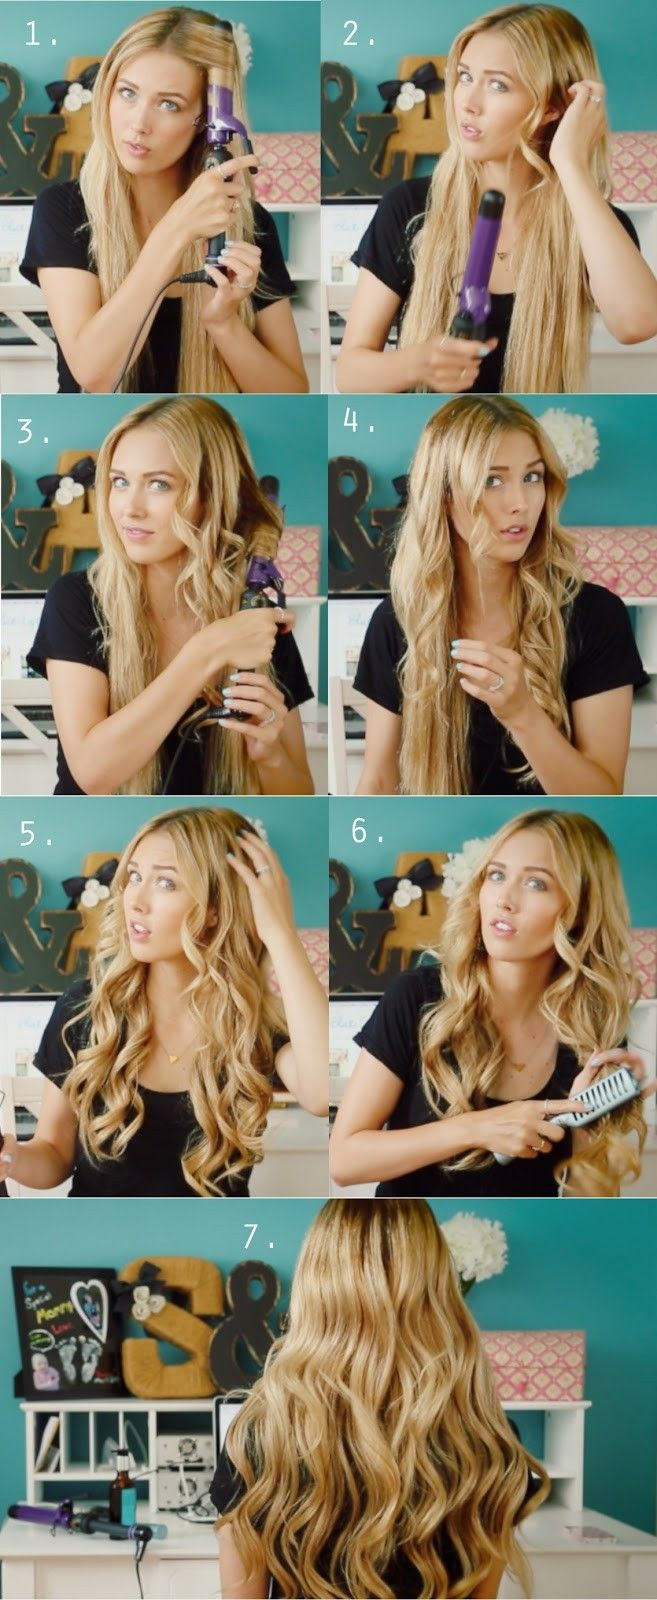 Tutorial on how to get waves for long hair. Girl is using curler on hair. Girl is brushing out curls. Girl is in her bedroom.